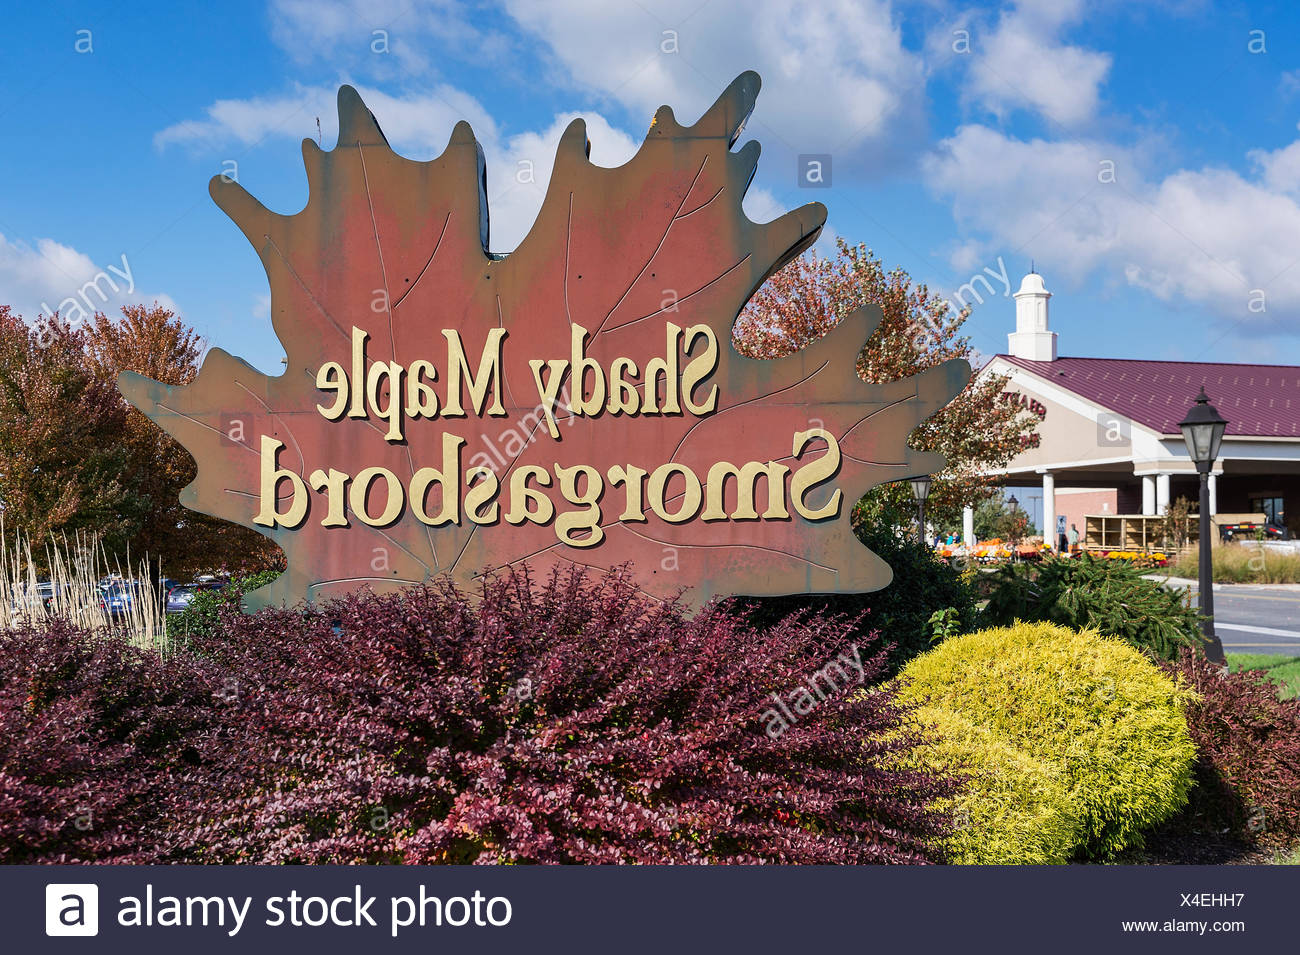 Shady Maple Smorgasbord, East Earl, Lancaster, Pennsylvania, USA - Stock Image